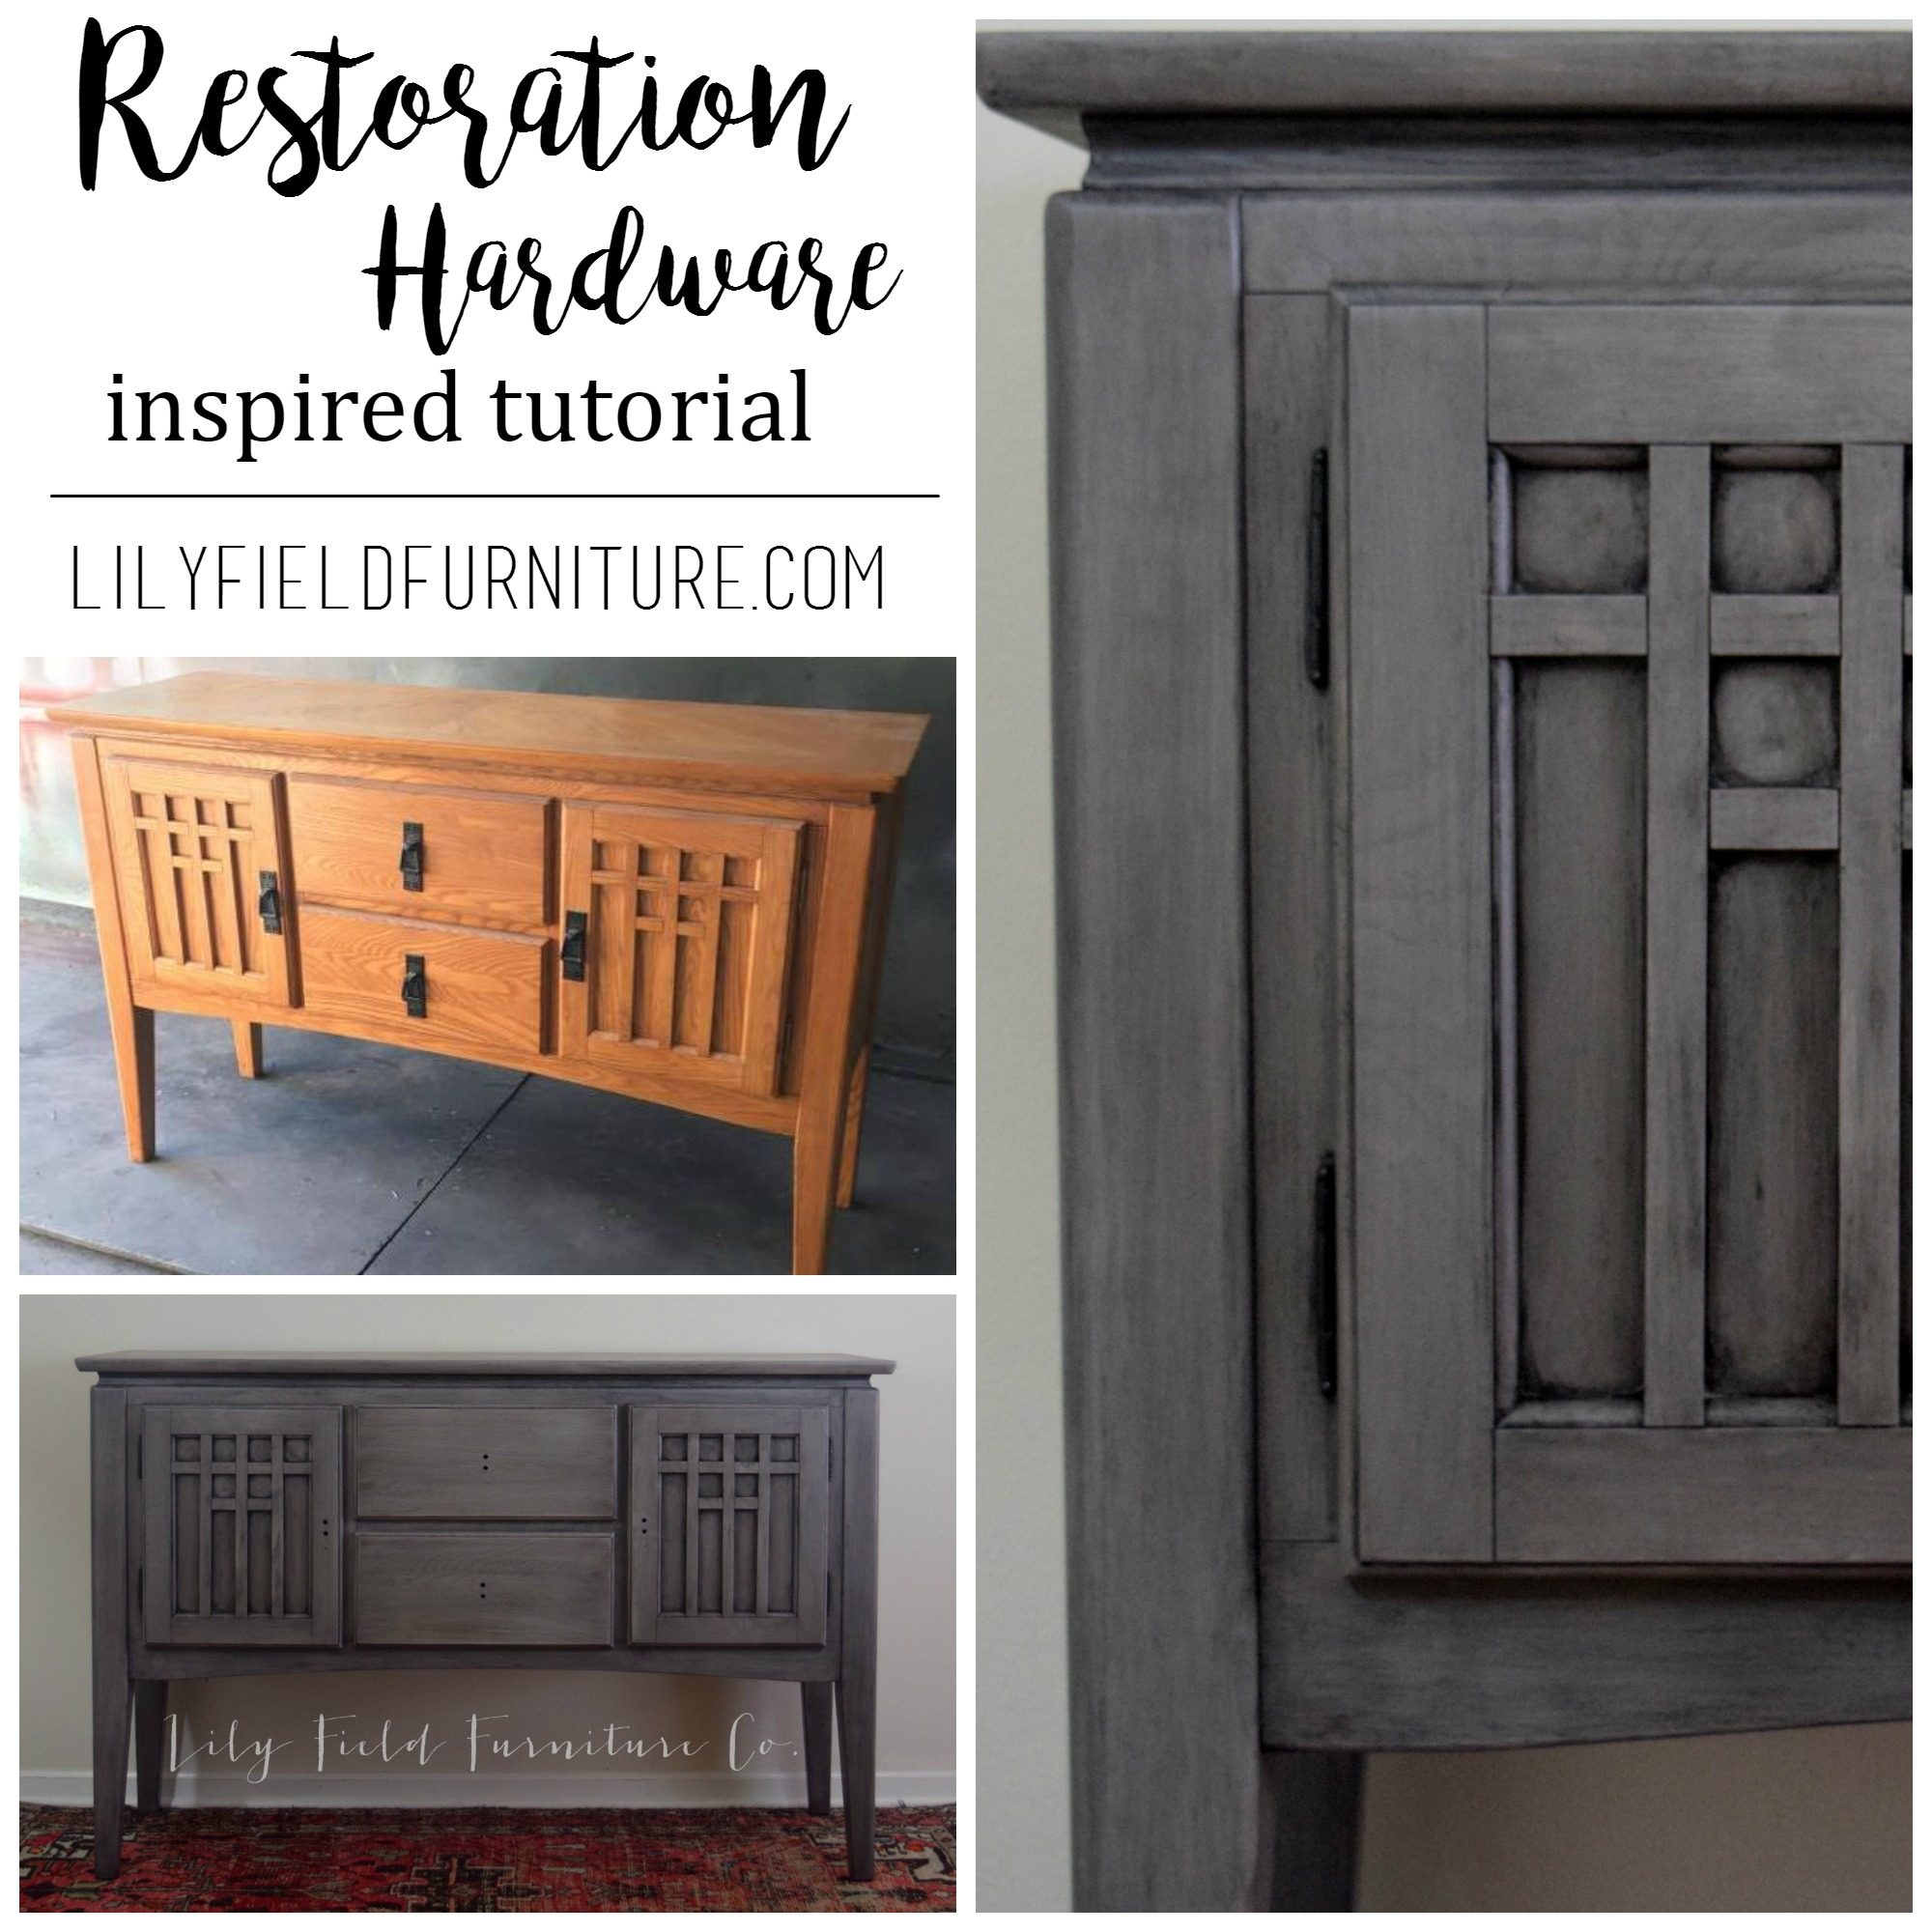 Dining Chairs Watchthetrailerfo Restoration Hardware Inspired Buffet Lily Field Co Diy Tutorial